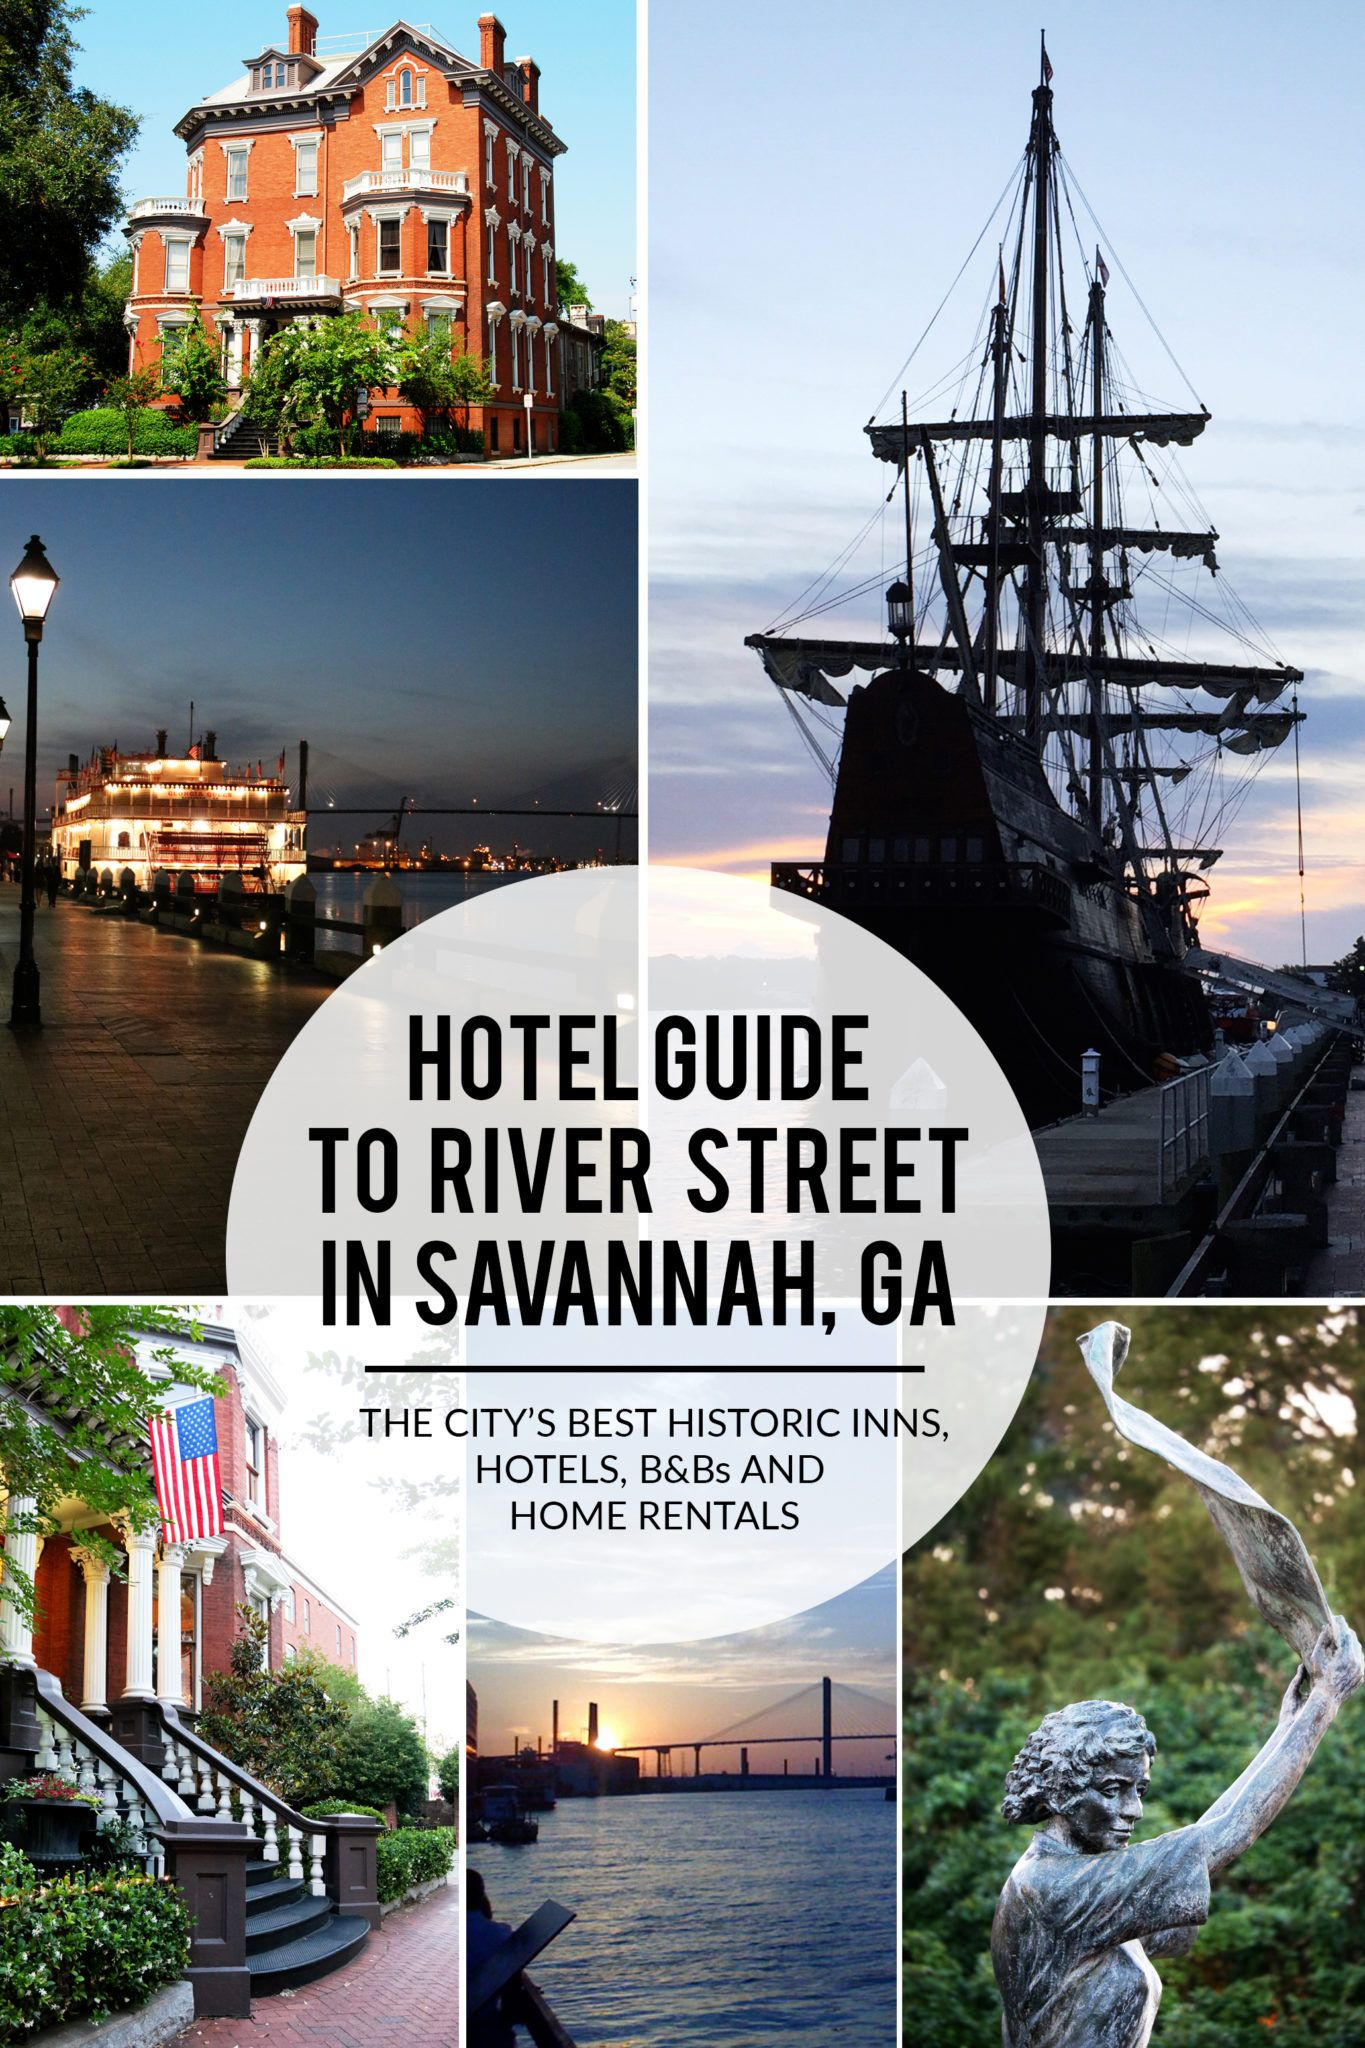 Looking For The Best Places To Stay In Savannah Near River Street Here Are Top Hotels Historic Inns And Home Als Located Within Walking Distance